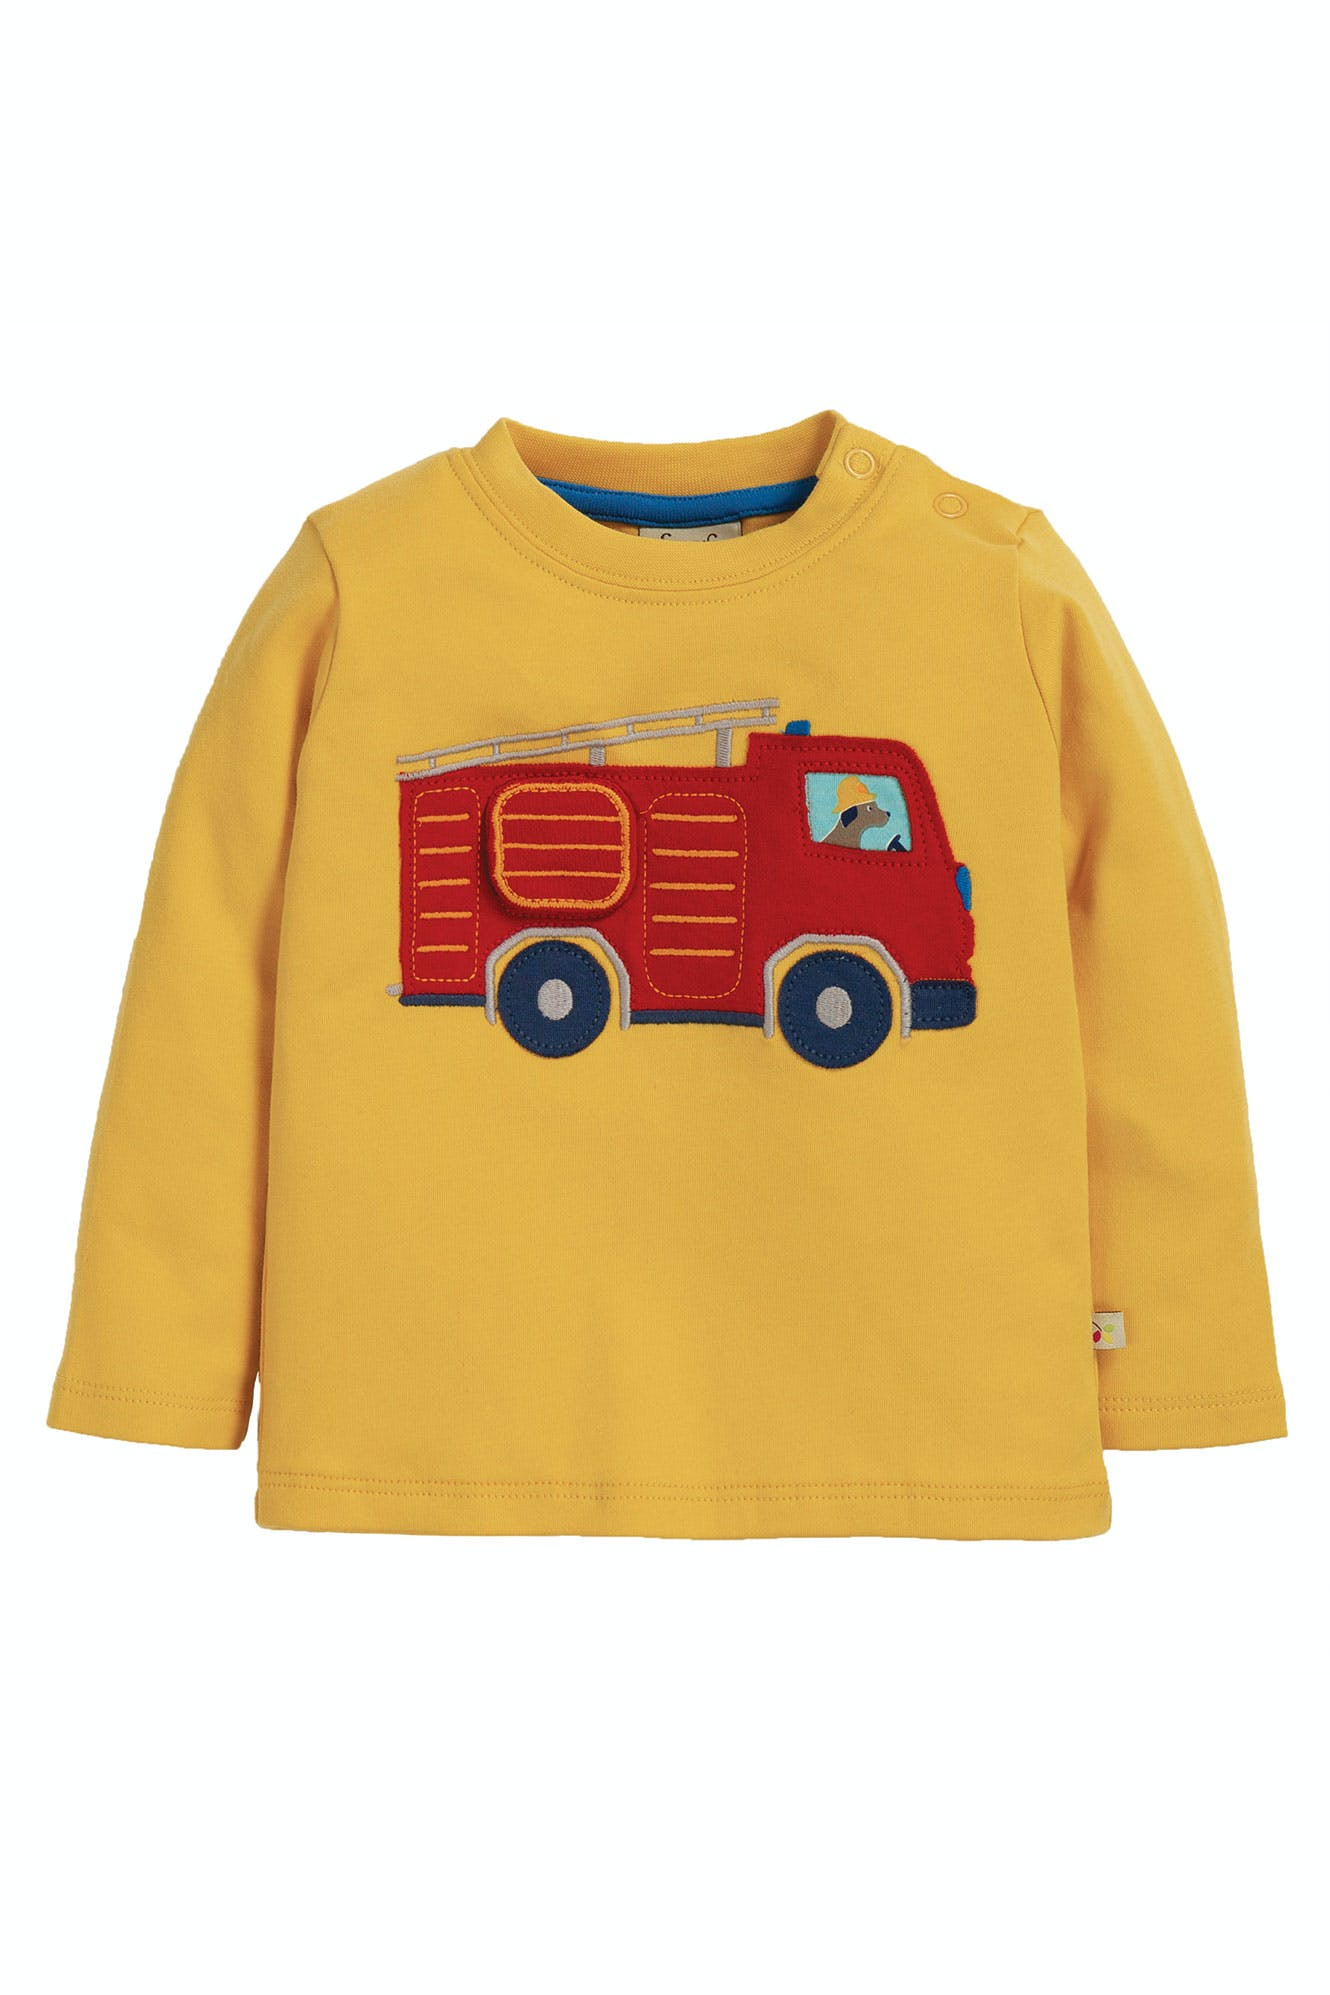 Click to view product details and reviews for Ira Interactive Applique Top.